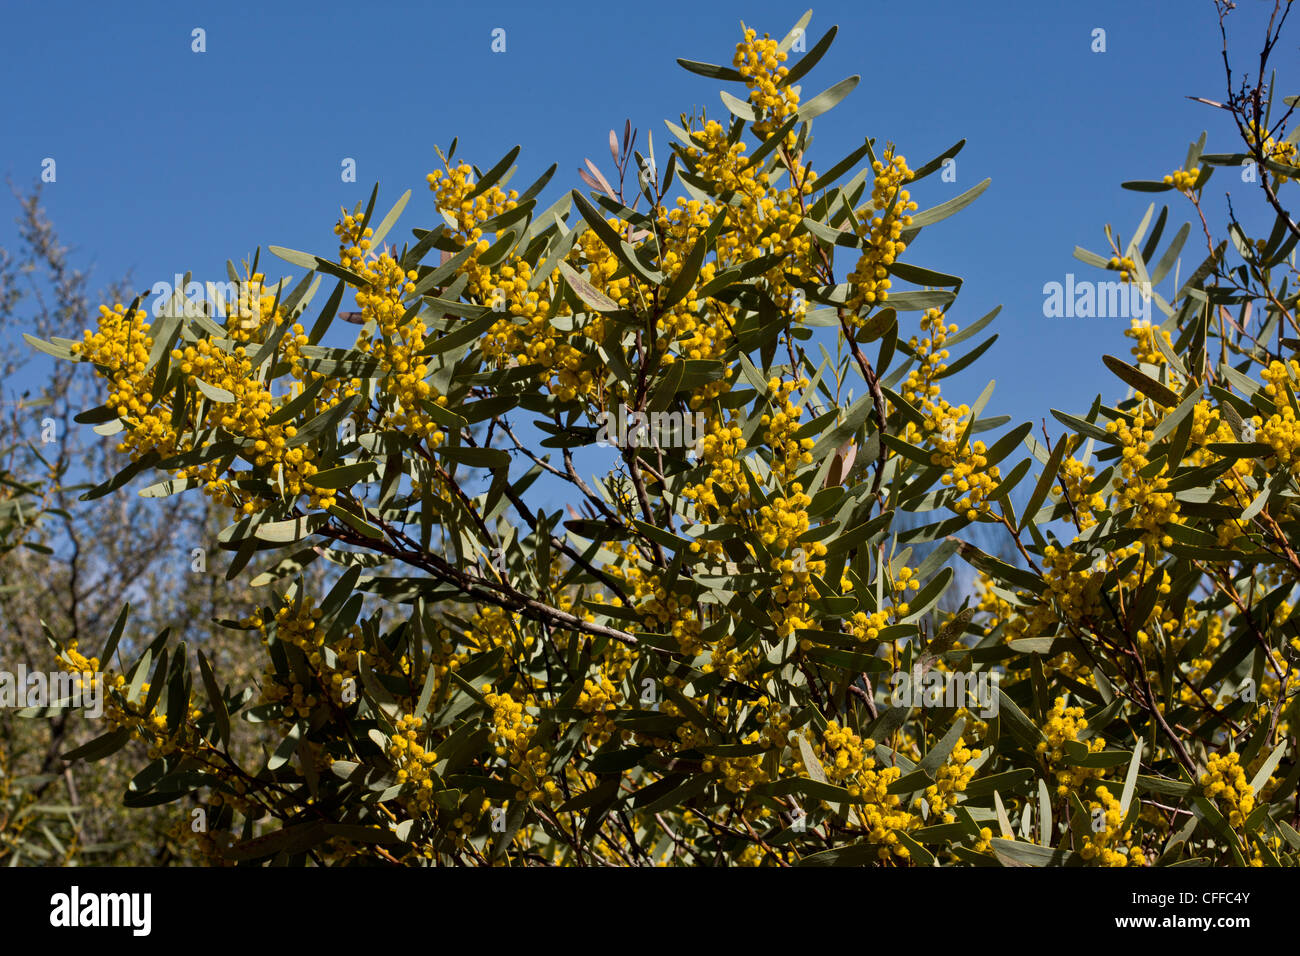 Mallee golden wattle or Flinders wattle, Acacia notabilis in flower. From Australia. - Stock Image